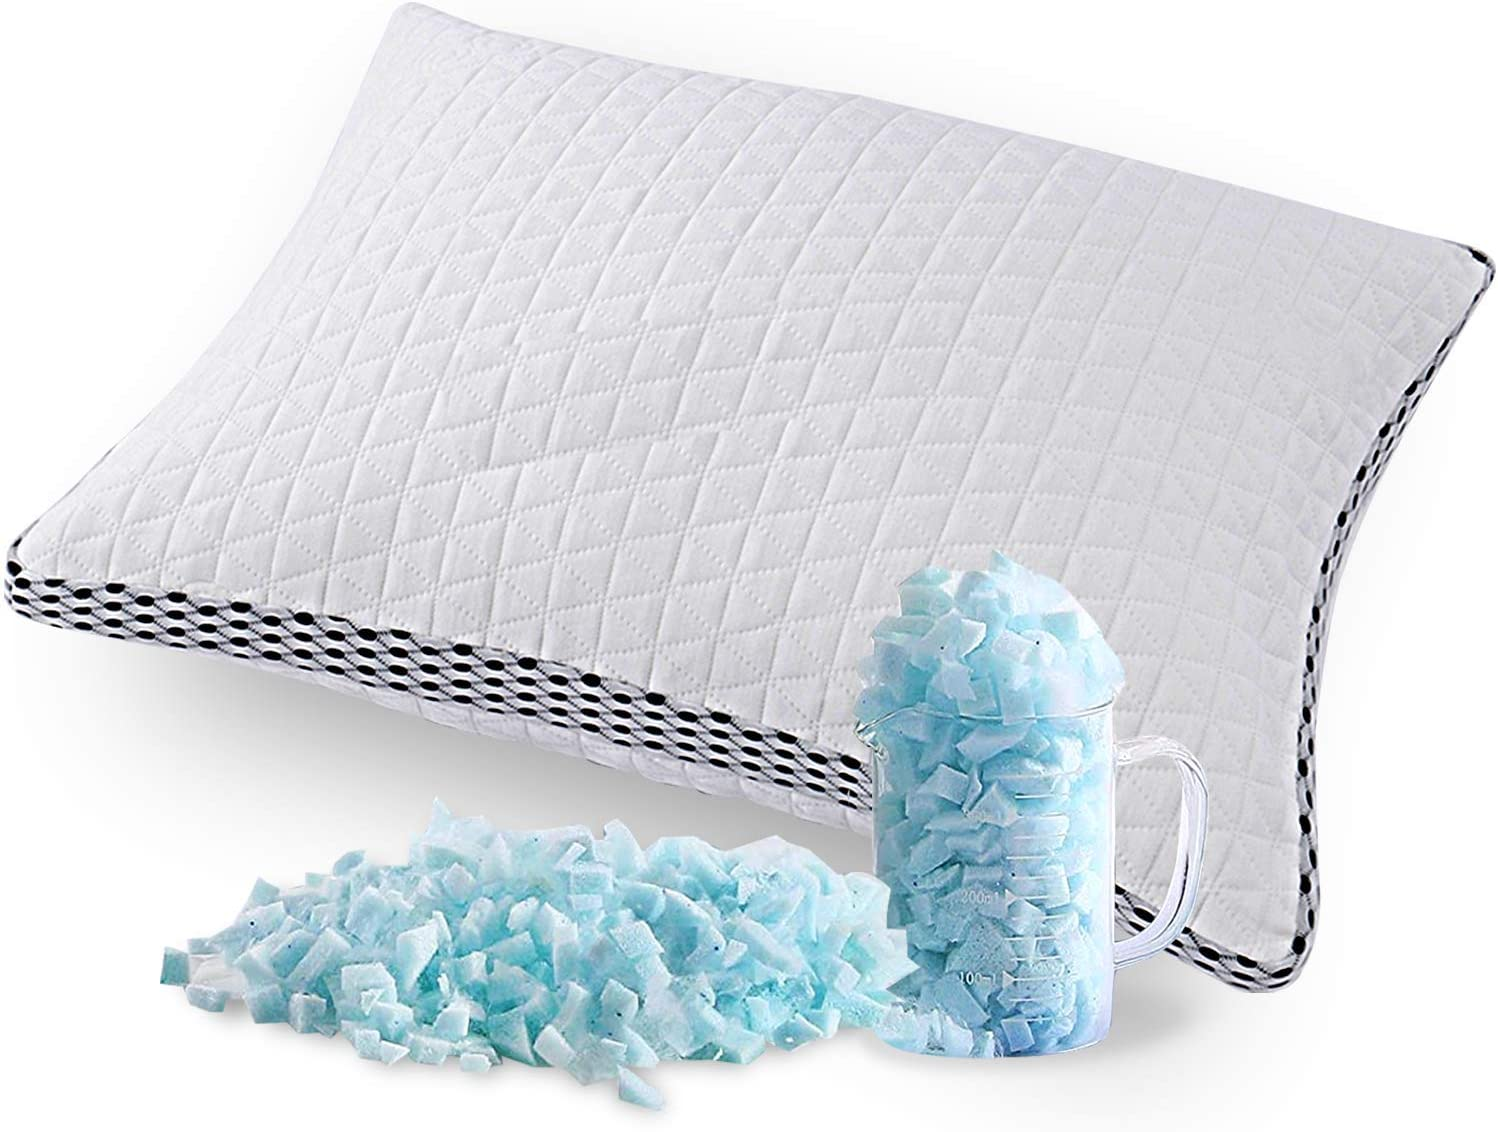 The Queen Size Bamboo Cooling Pillow provides excellent Neck and Shoulder Support